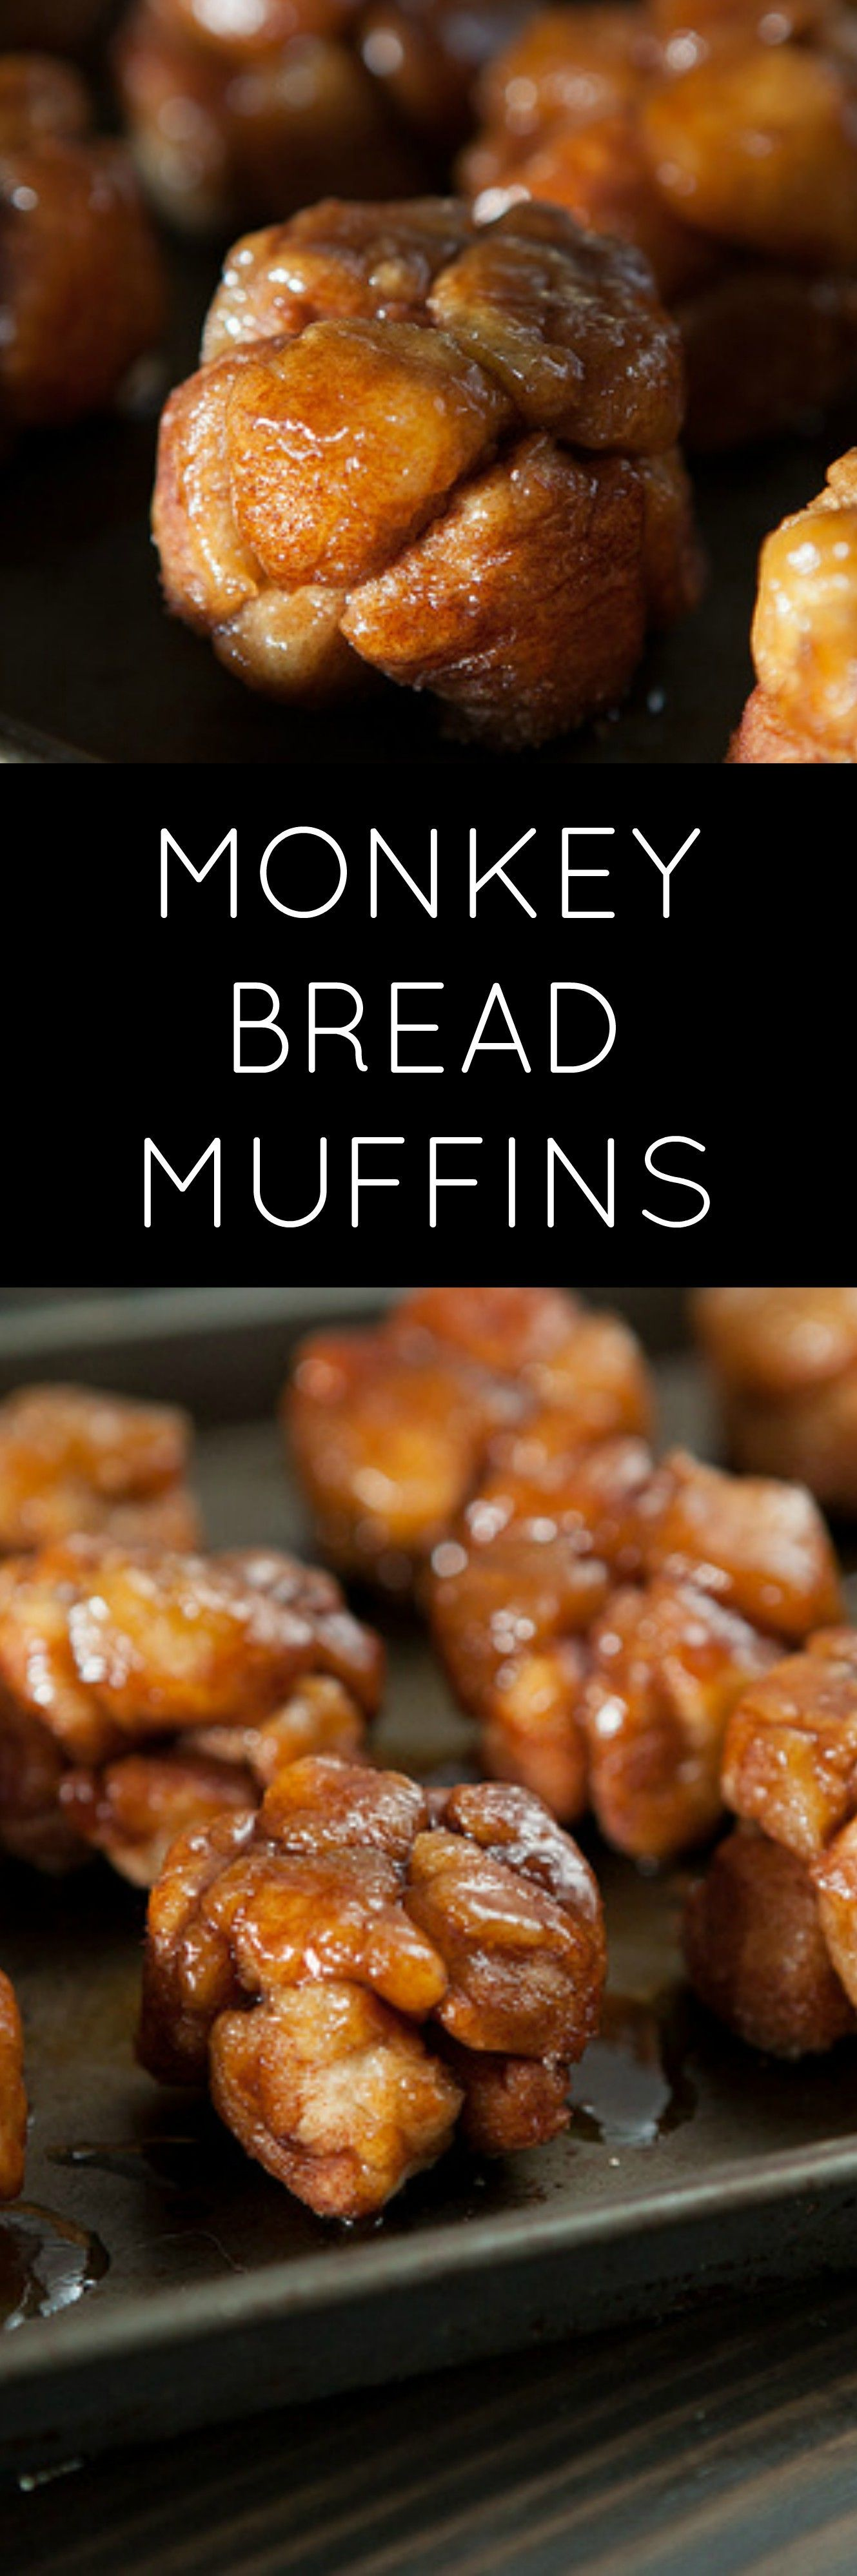 Delicious Monkey Bread Muffins Are Easy To Make With